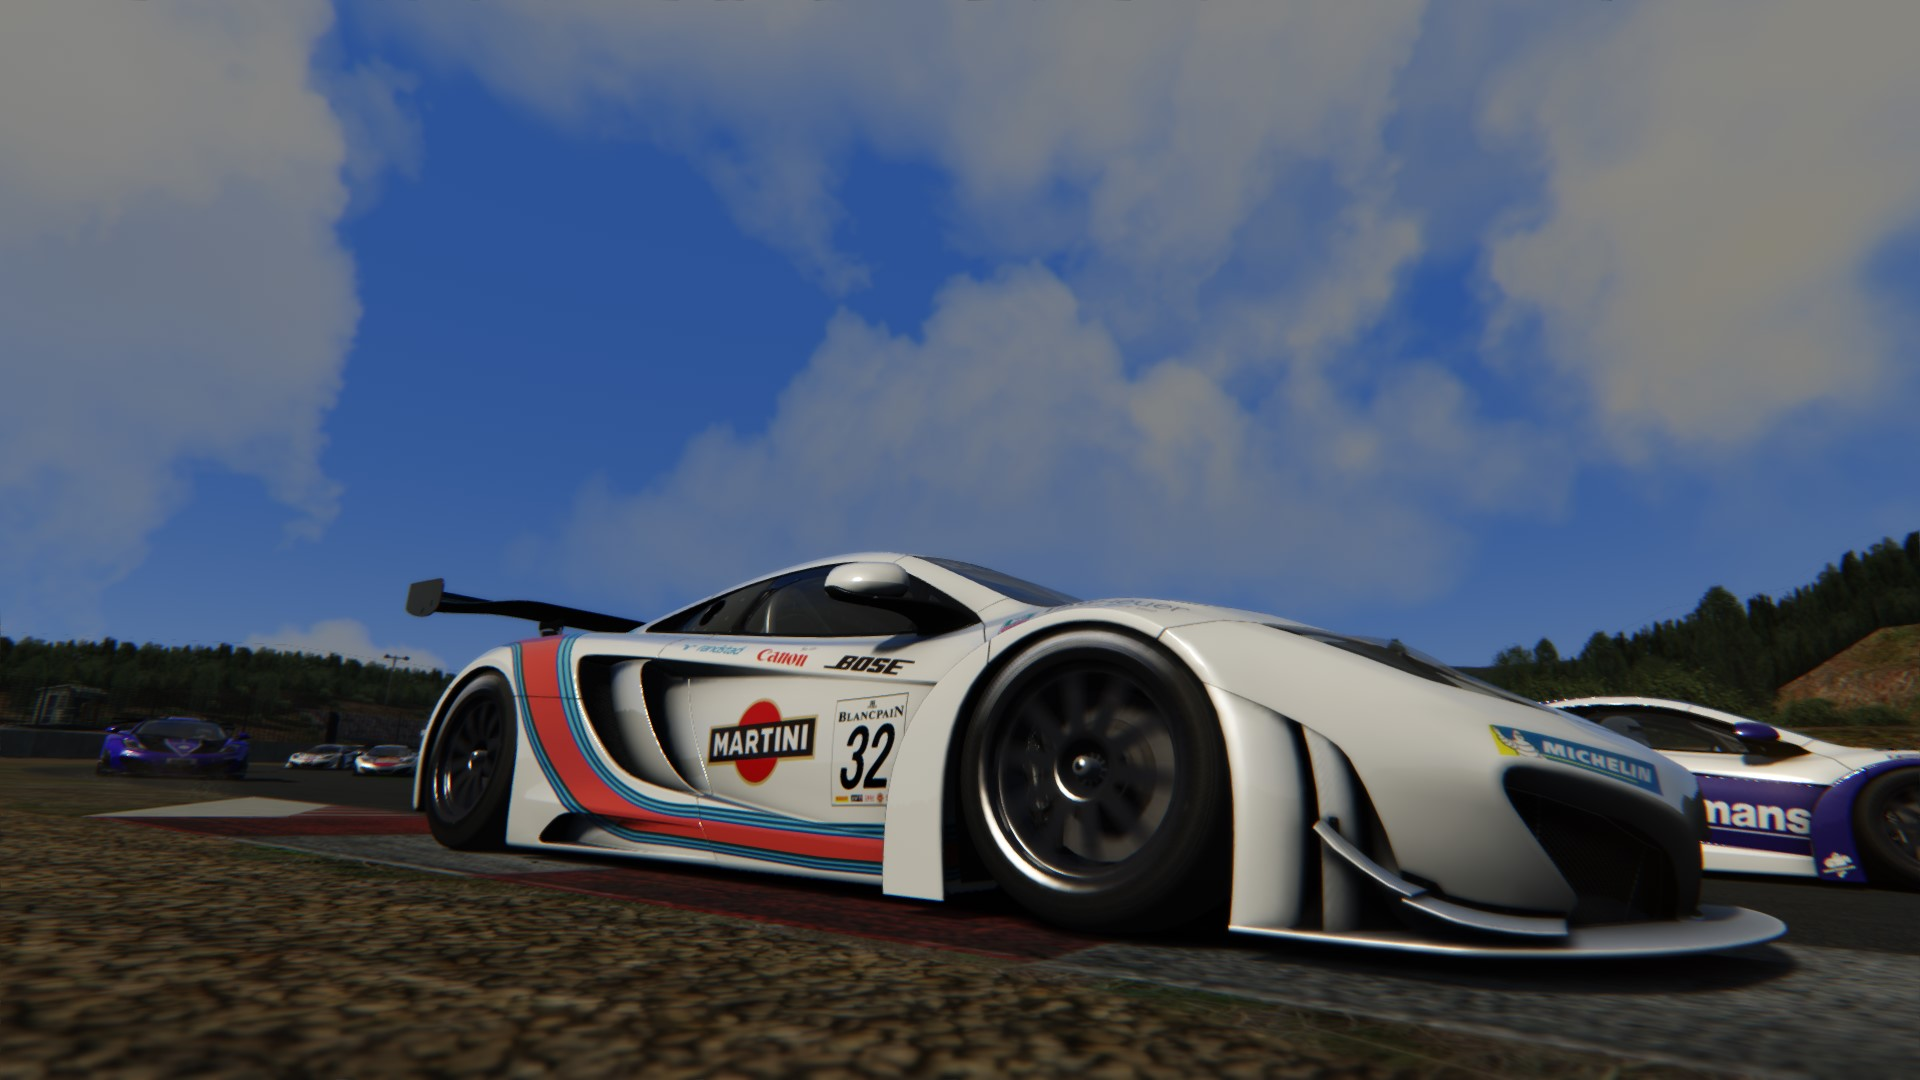 Screenshot_mclaren_mp412c_gt3_sportsland_sugo_7-4-116-12-5-53.jpg